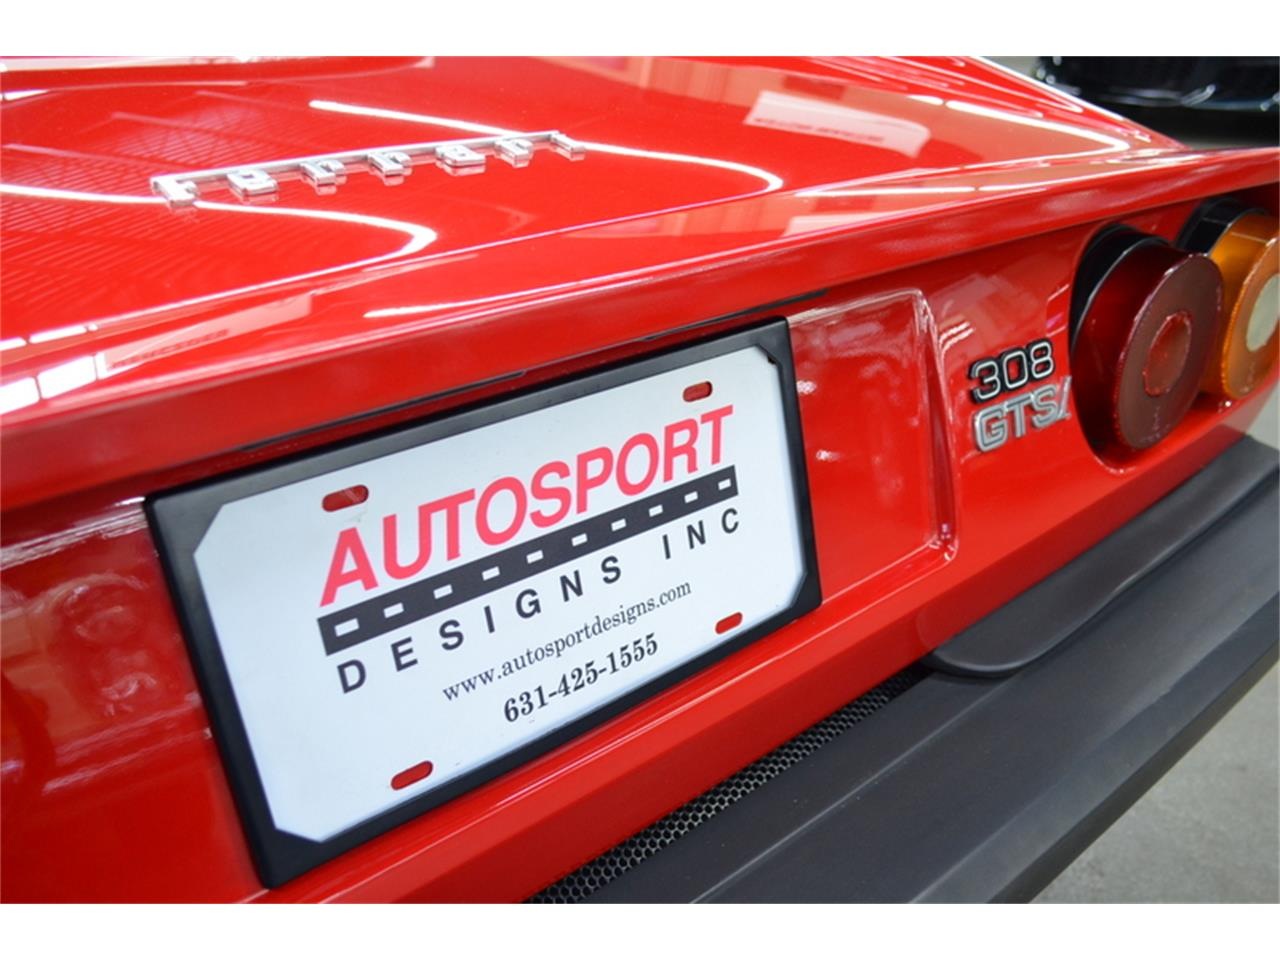 Large Picture of 1981 308 GTSI located in New York Offered by Autosport Designs Inc - PSNH